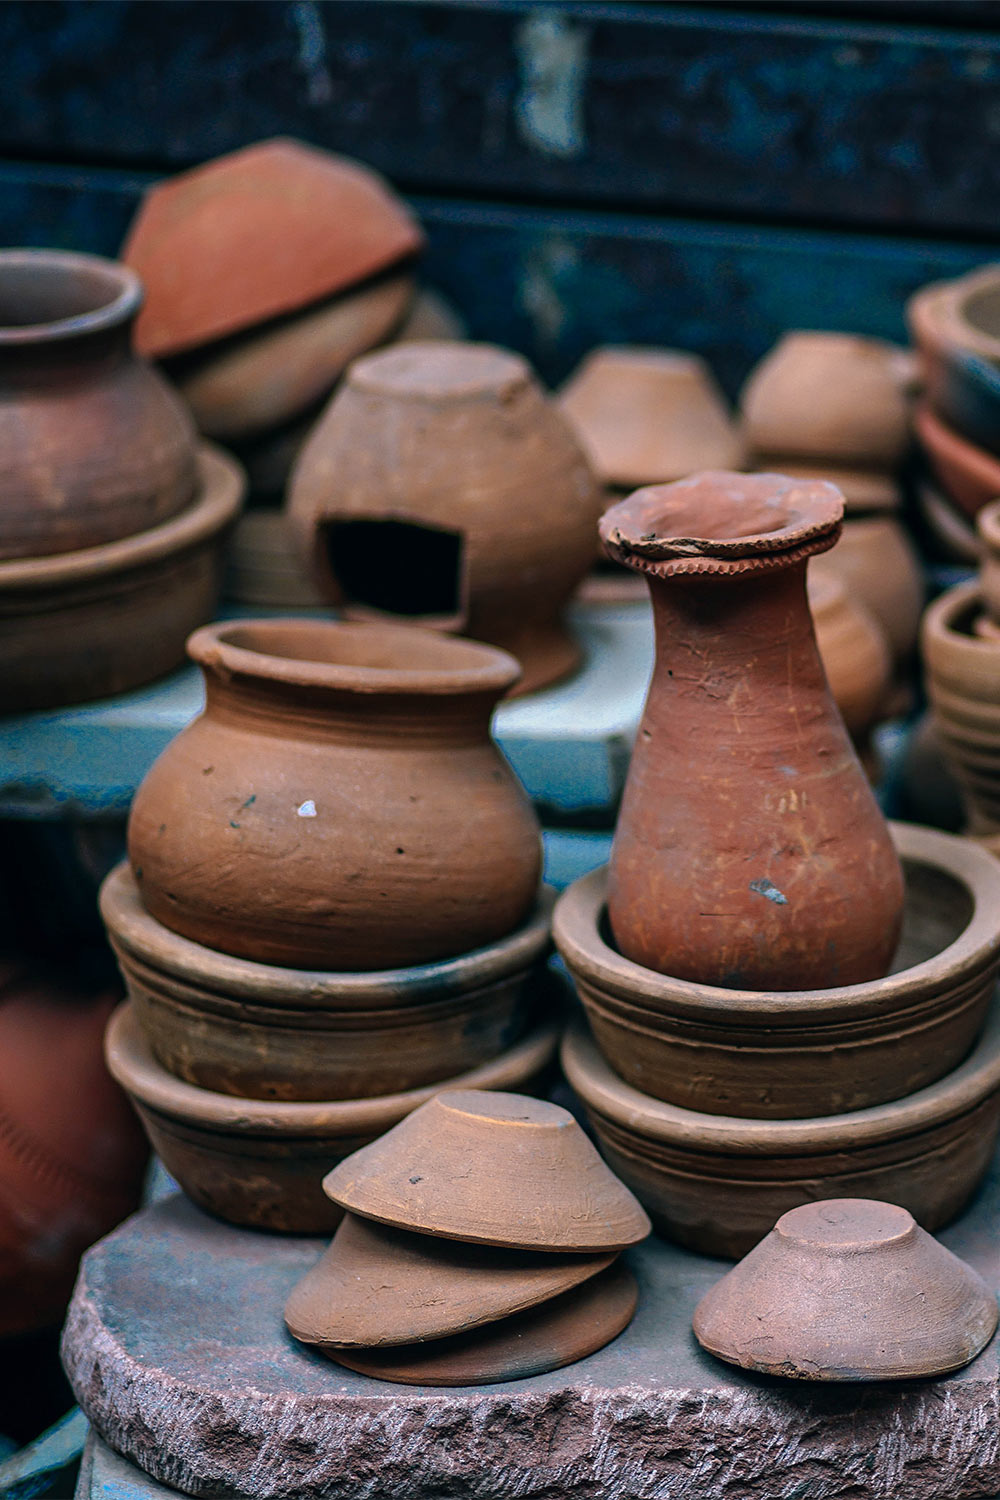 To remove while salt rings from clay pots, wipe undiluted white vinegar over the affected areas